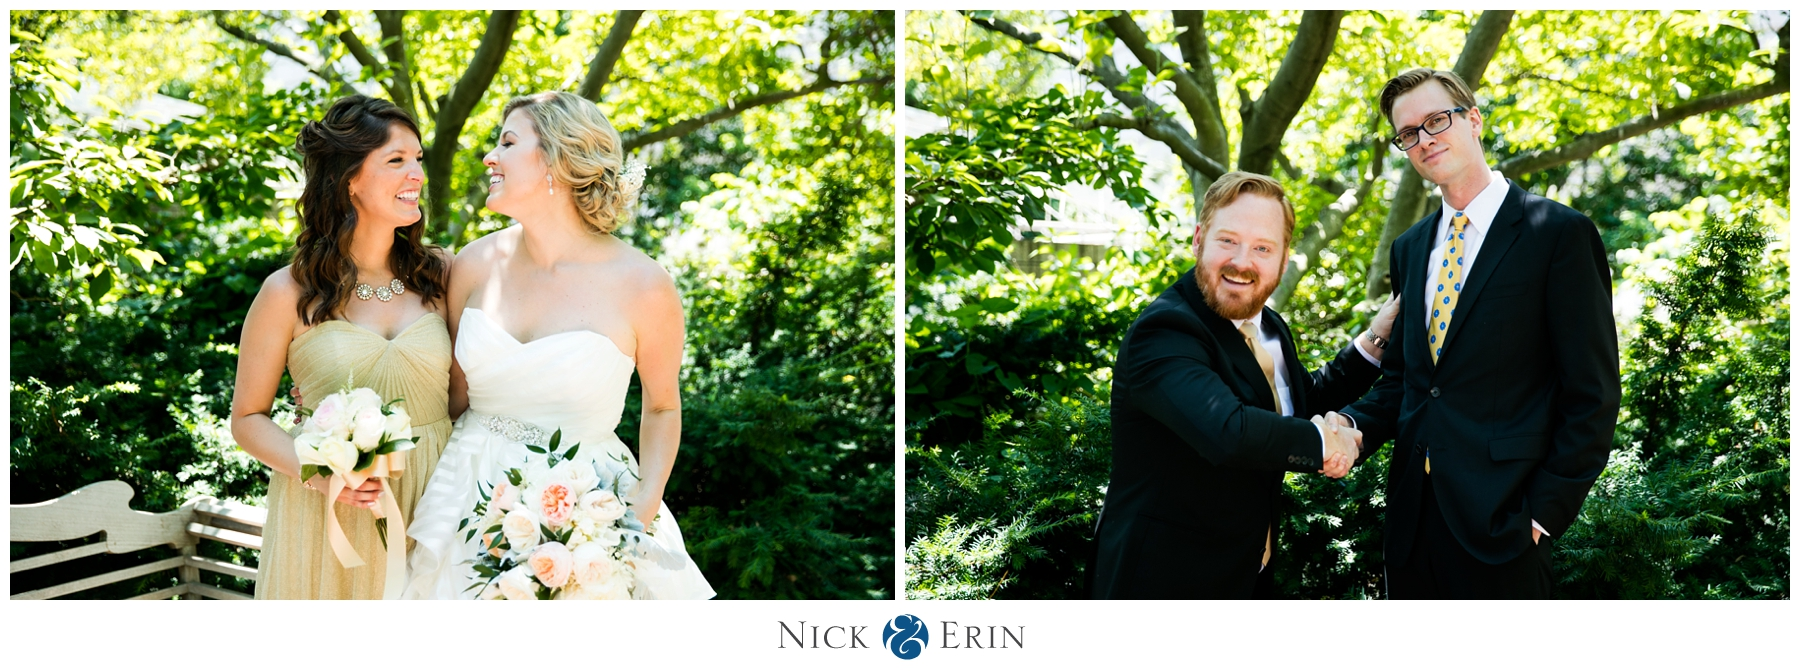 Donner_Photography_Washington DC Wedding_Rachel & Taylor_0034